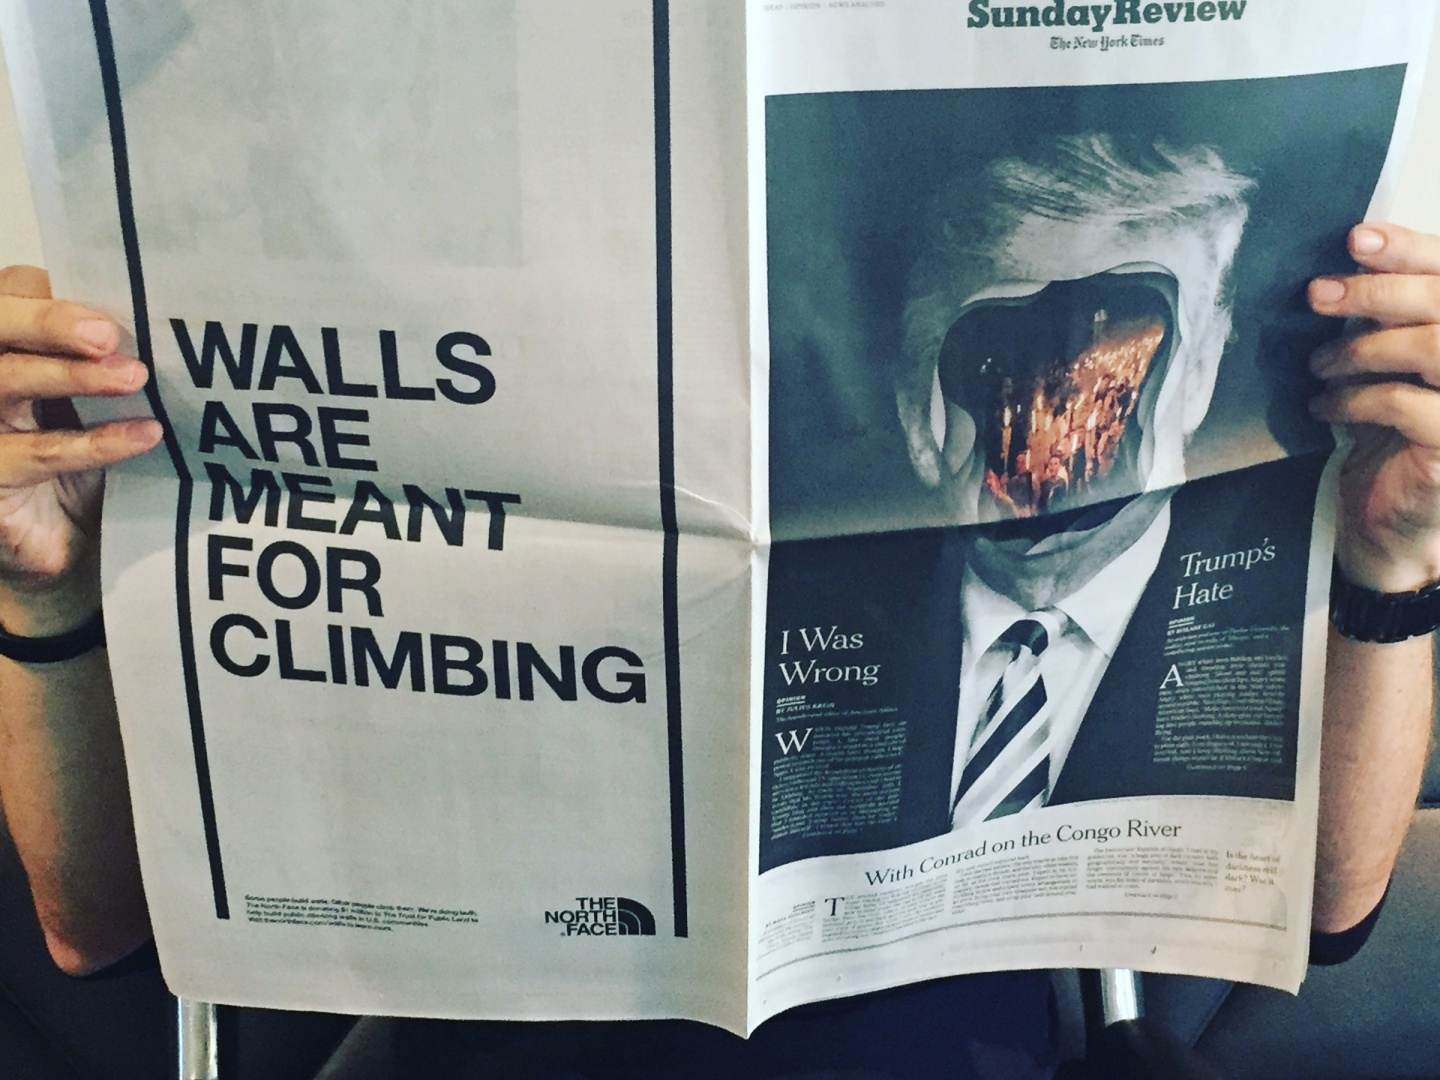 Walls are Meant for Climbing; hijacking the most powerful cultural conversation of 2017.  Thumbnail